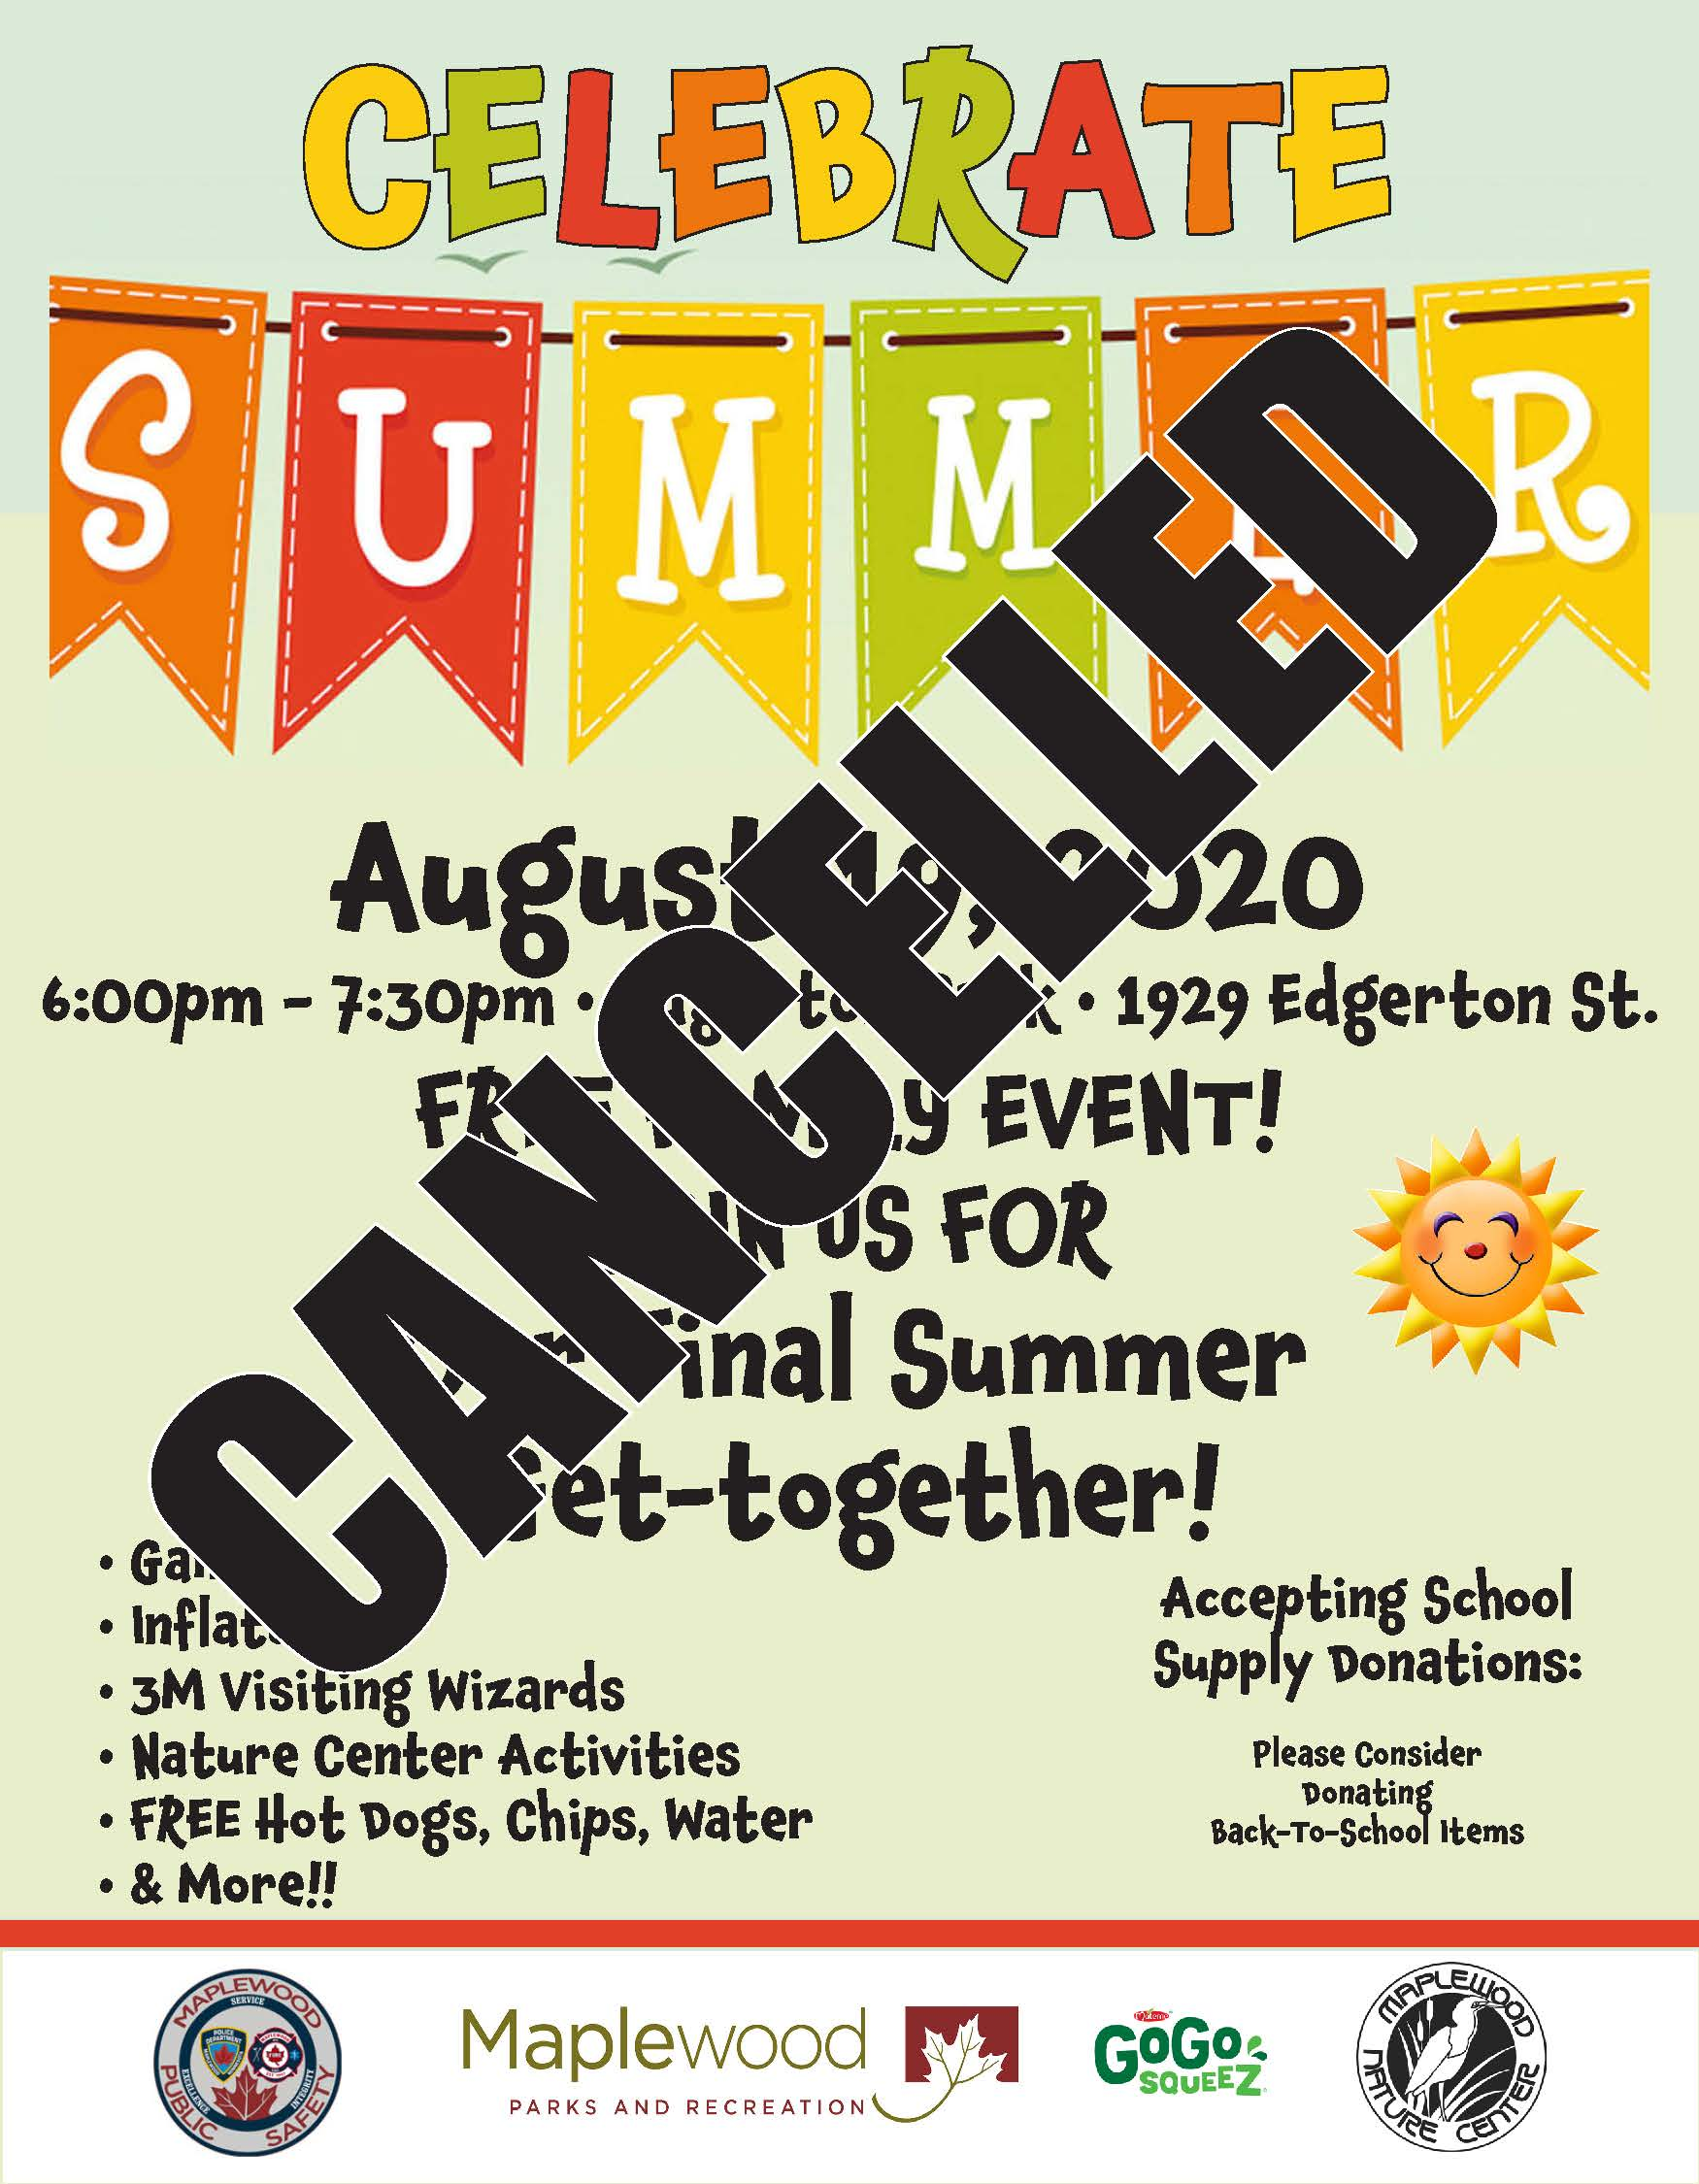 Celebrate Summer August Event Edgerton Park August 19 6pm-7:30pm Free Admission